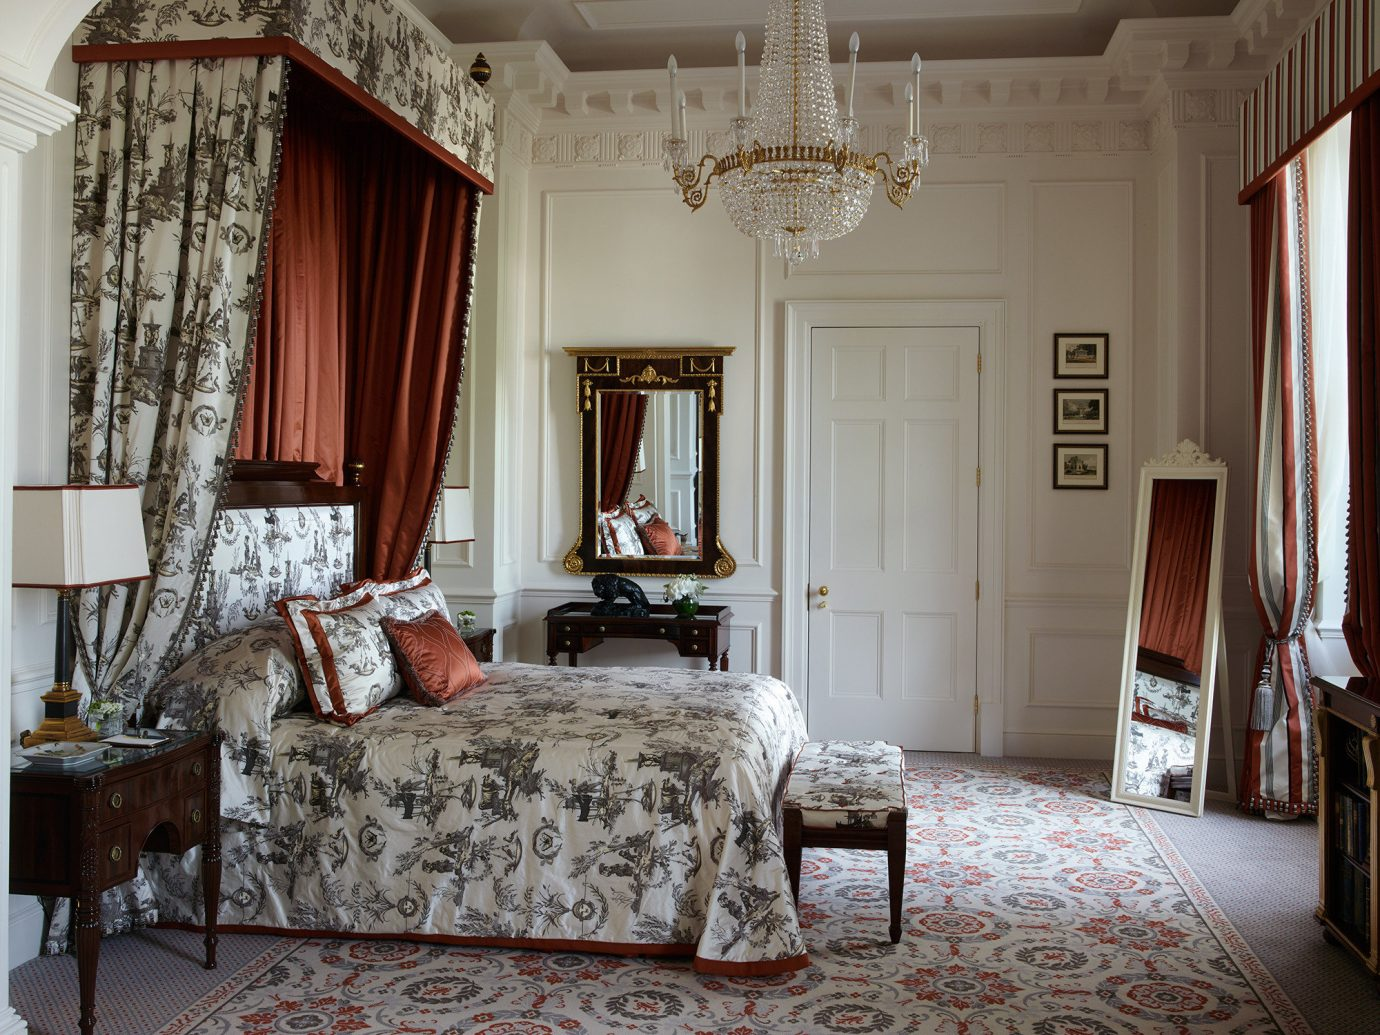 Boutique Hotels Celebs Hotels London Luxury Travel Romance Trip Ideas Winter indoor room floor wall Bedroom interior design home furniture window living room window treatment bed frame Living textile estate curtain bed four poster window covering Suite ceiling house real estate bed sheet flooring decor decorated